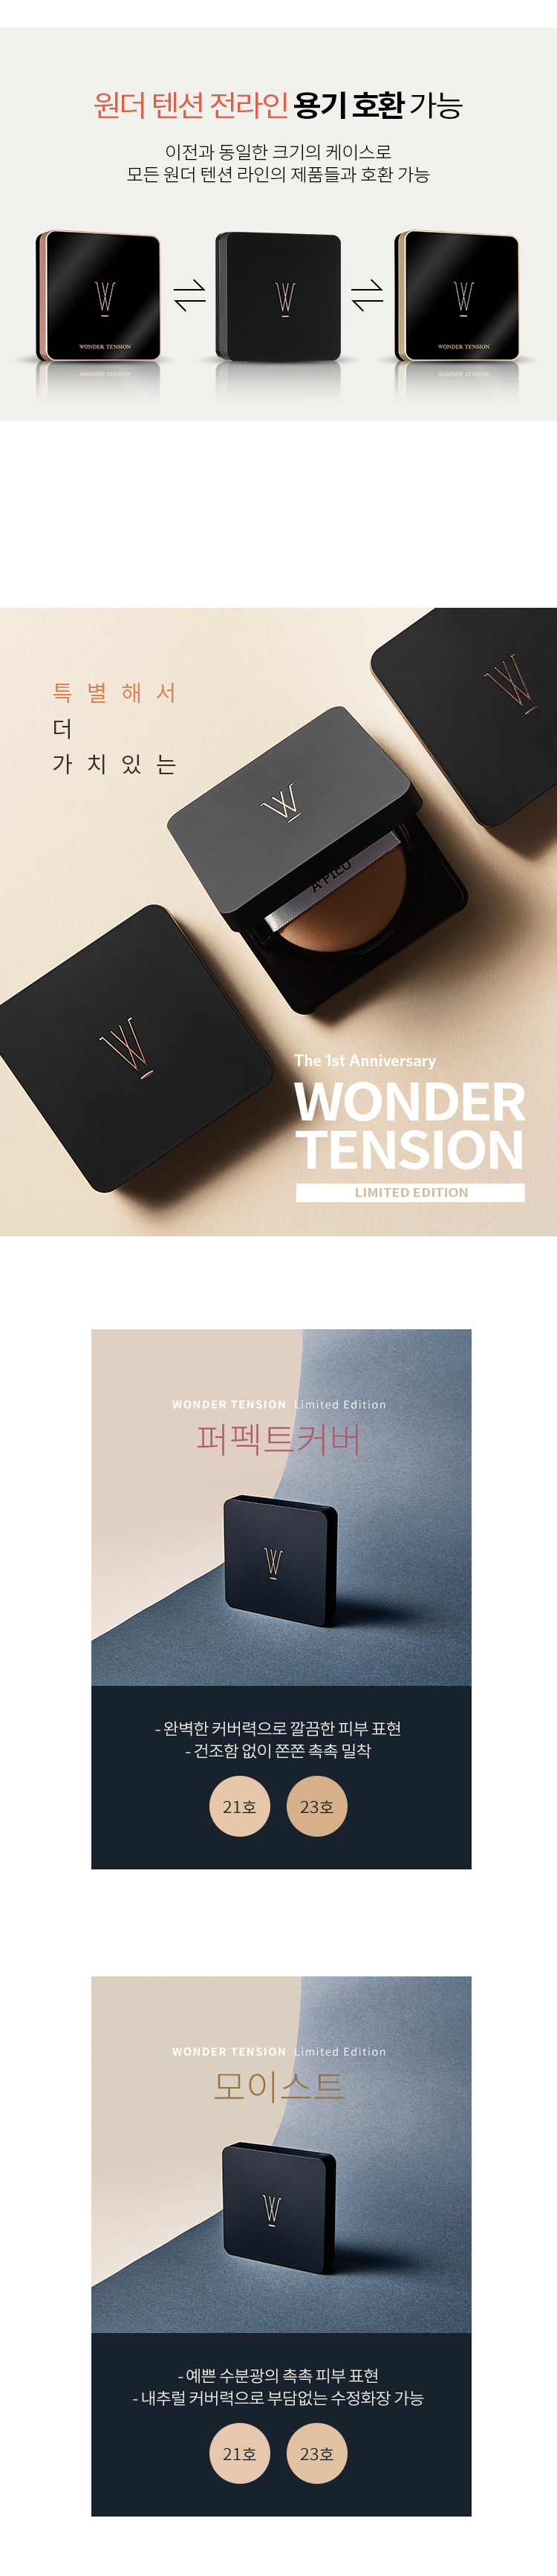 WONDER_TENSION_Limited_Edition_03.jpg